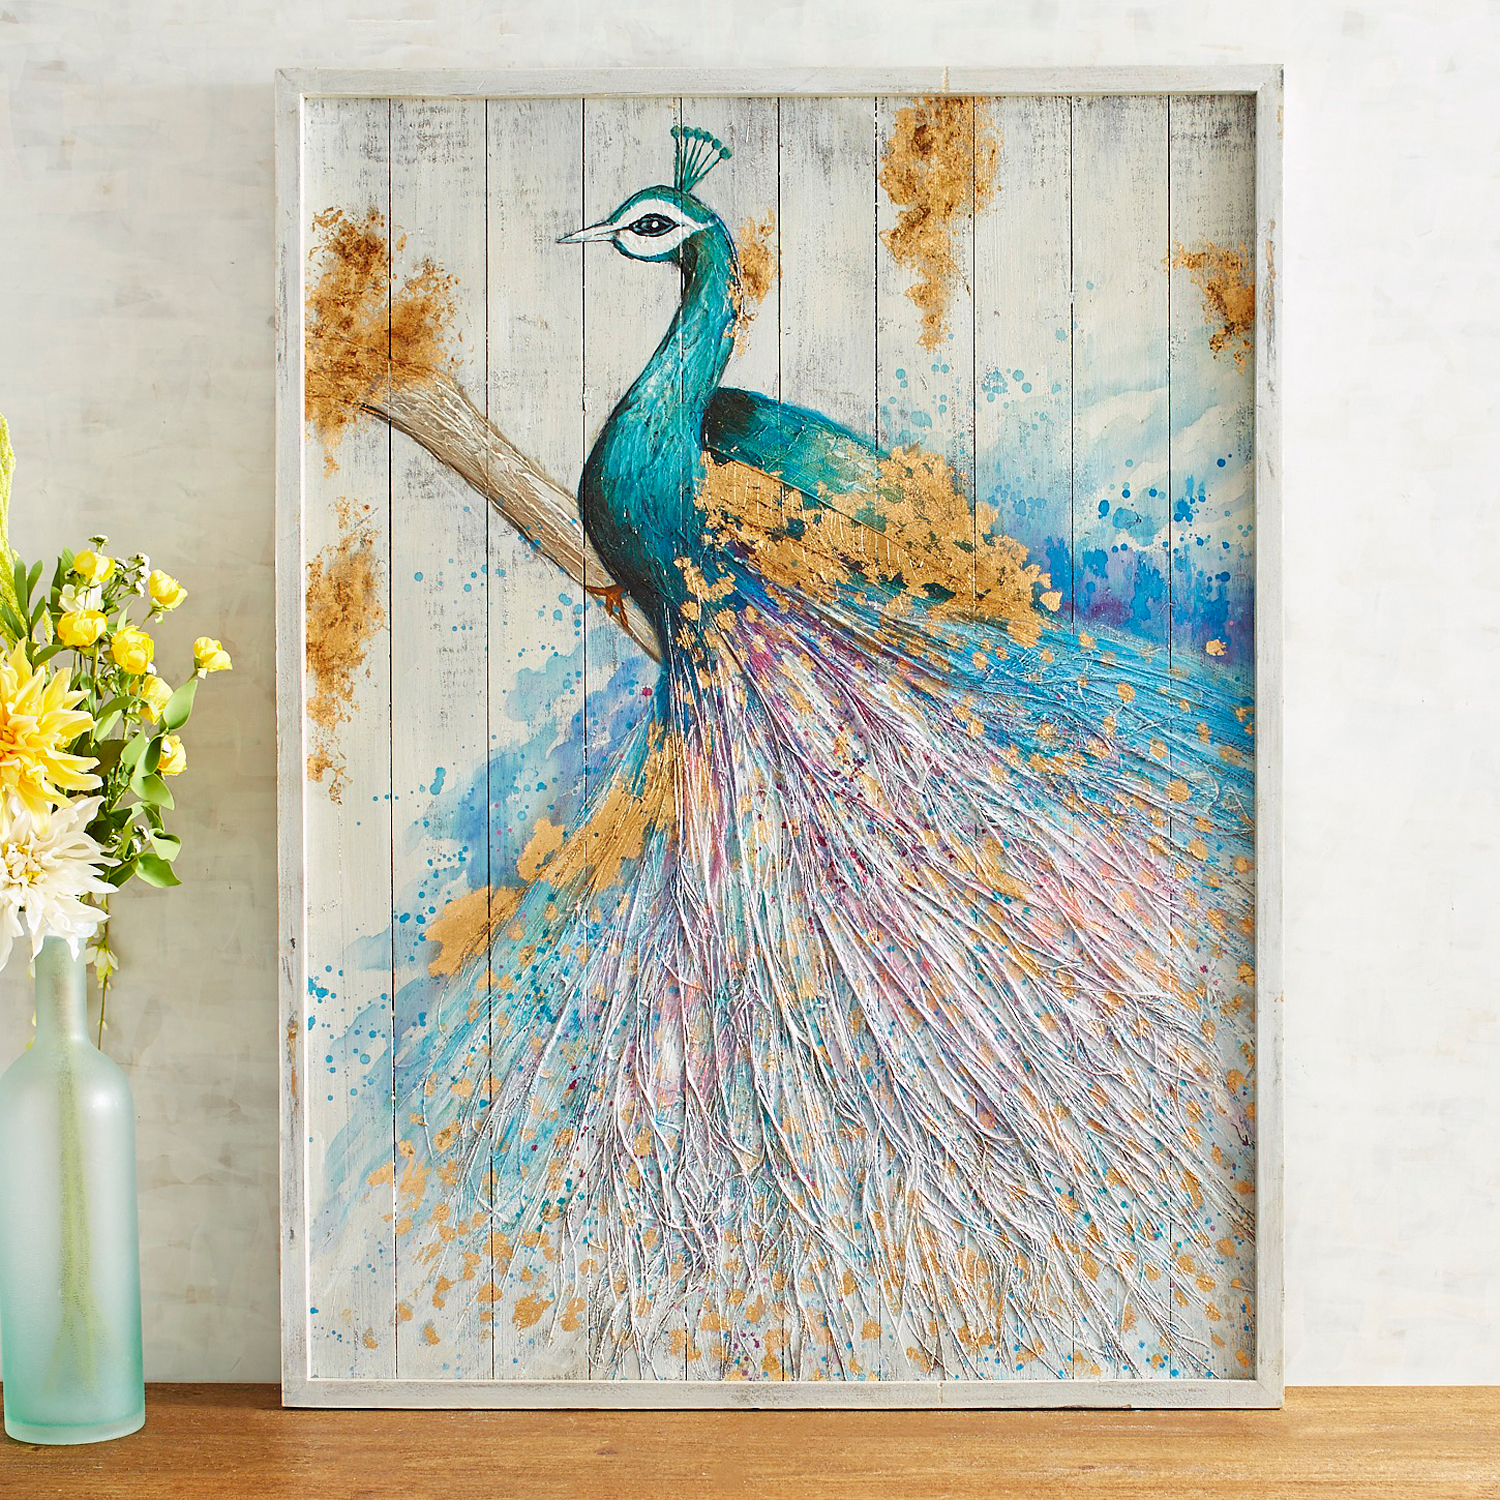 Planked Glamorous Peacock Wall Decor